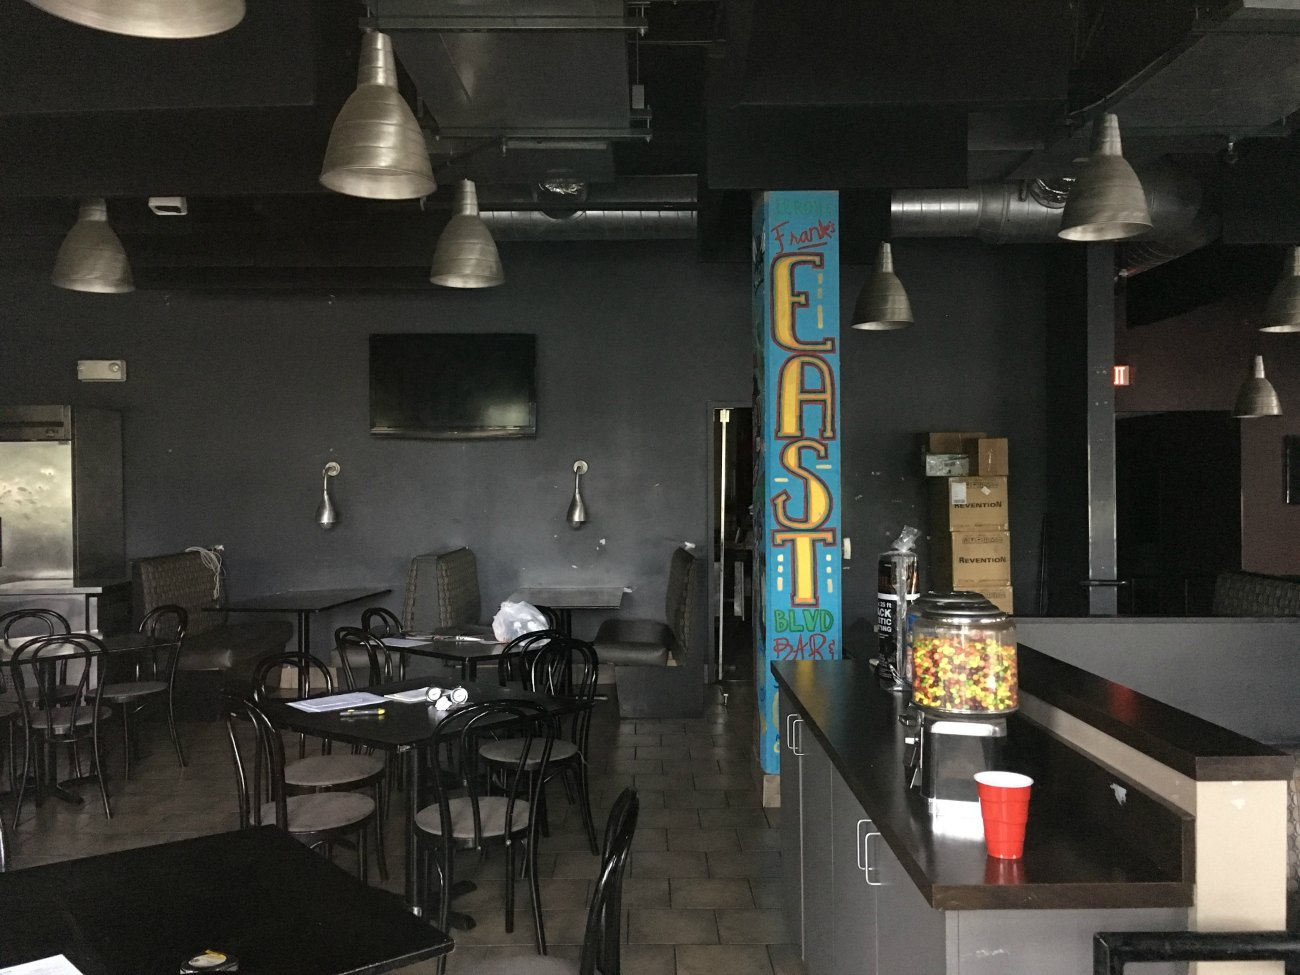 Former East Boulevard Bar & Grill space in Dilworth to become an Irish pub